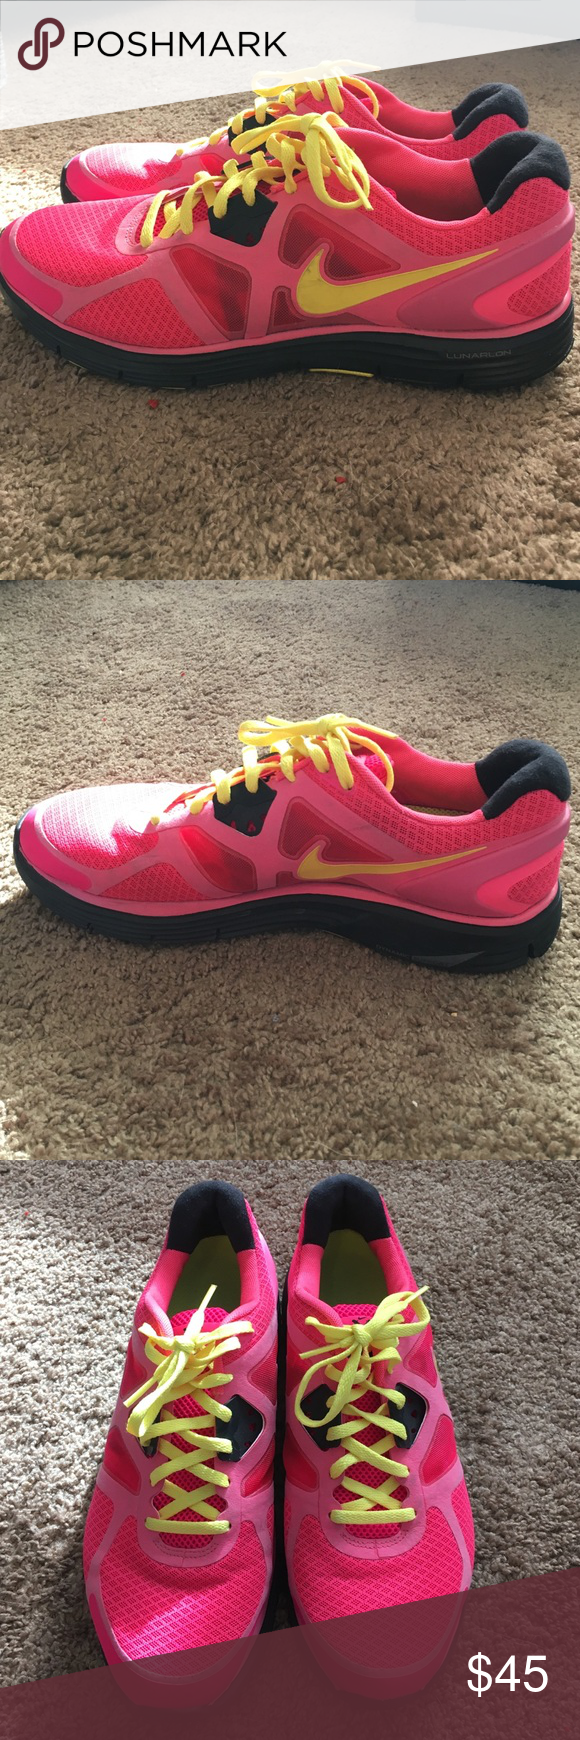 Women's Lunarglide, size 10.5 Great condition! Nike Shoes Athletic Shoes